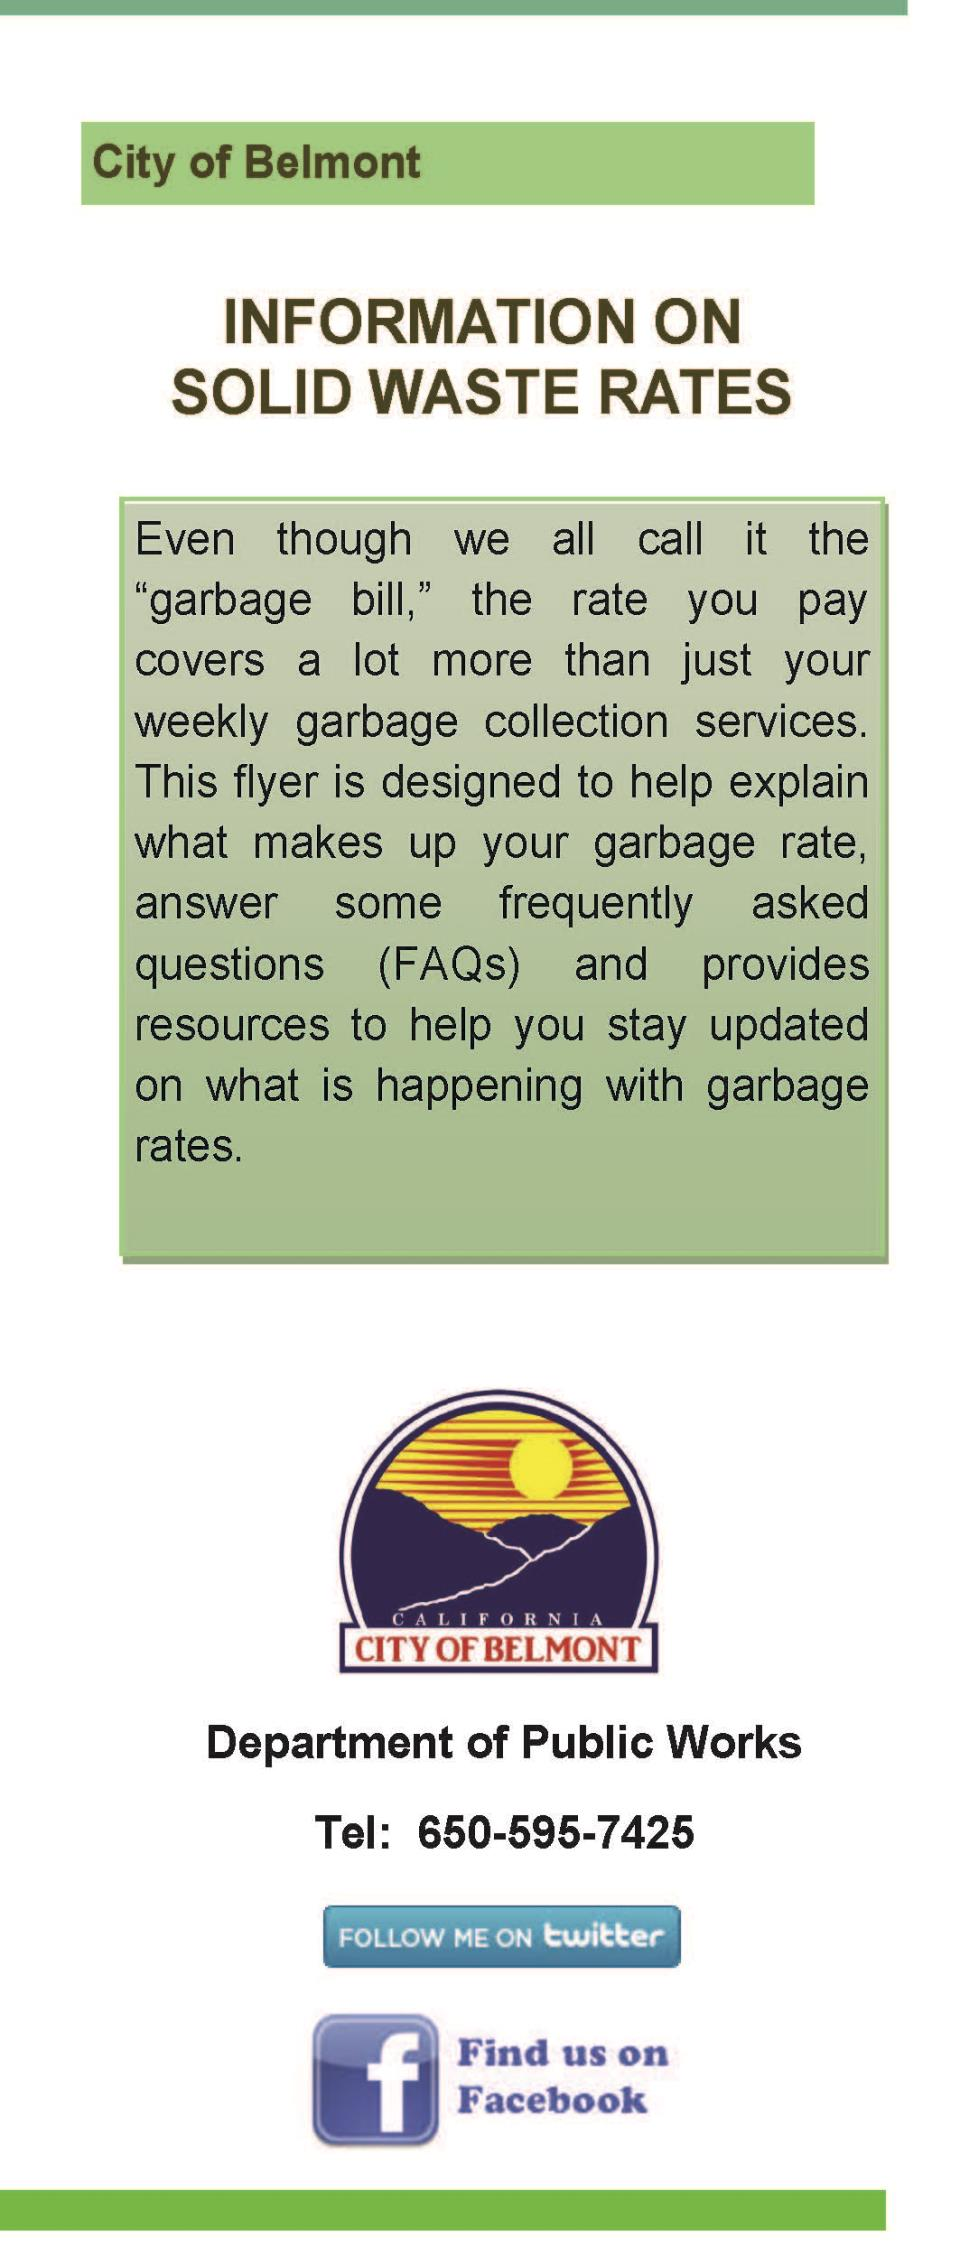 Solid Waste Rate info brochure_final_rev 011513_Page_1 - Copy